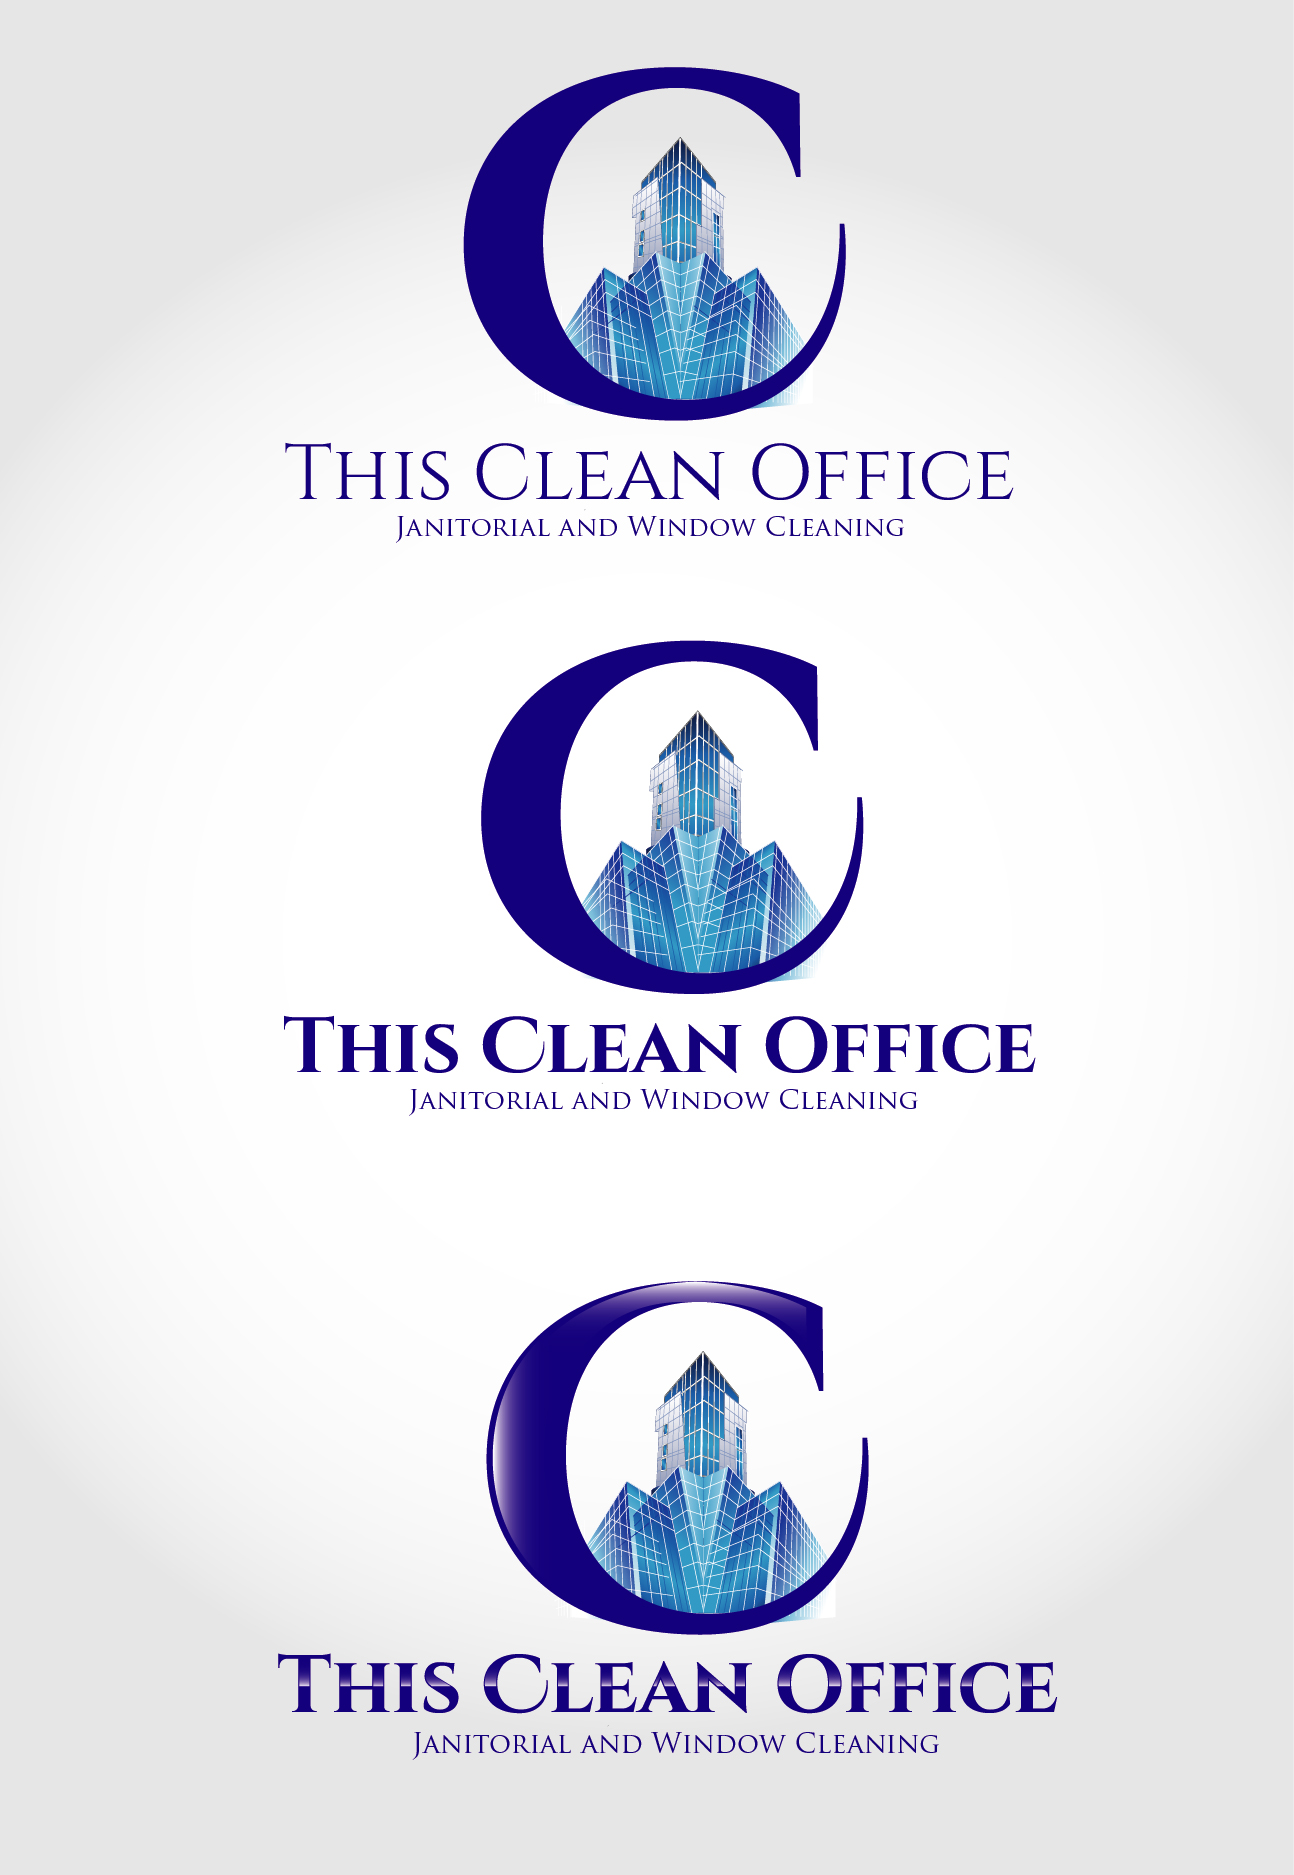 Logo Design by VENTSISLAV KOVACHEV - Entry No. 37 in the Logo Design Contest Professional and Unforgettable Logo Design for This Clean Office.